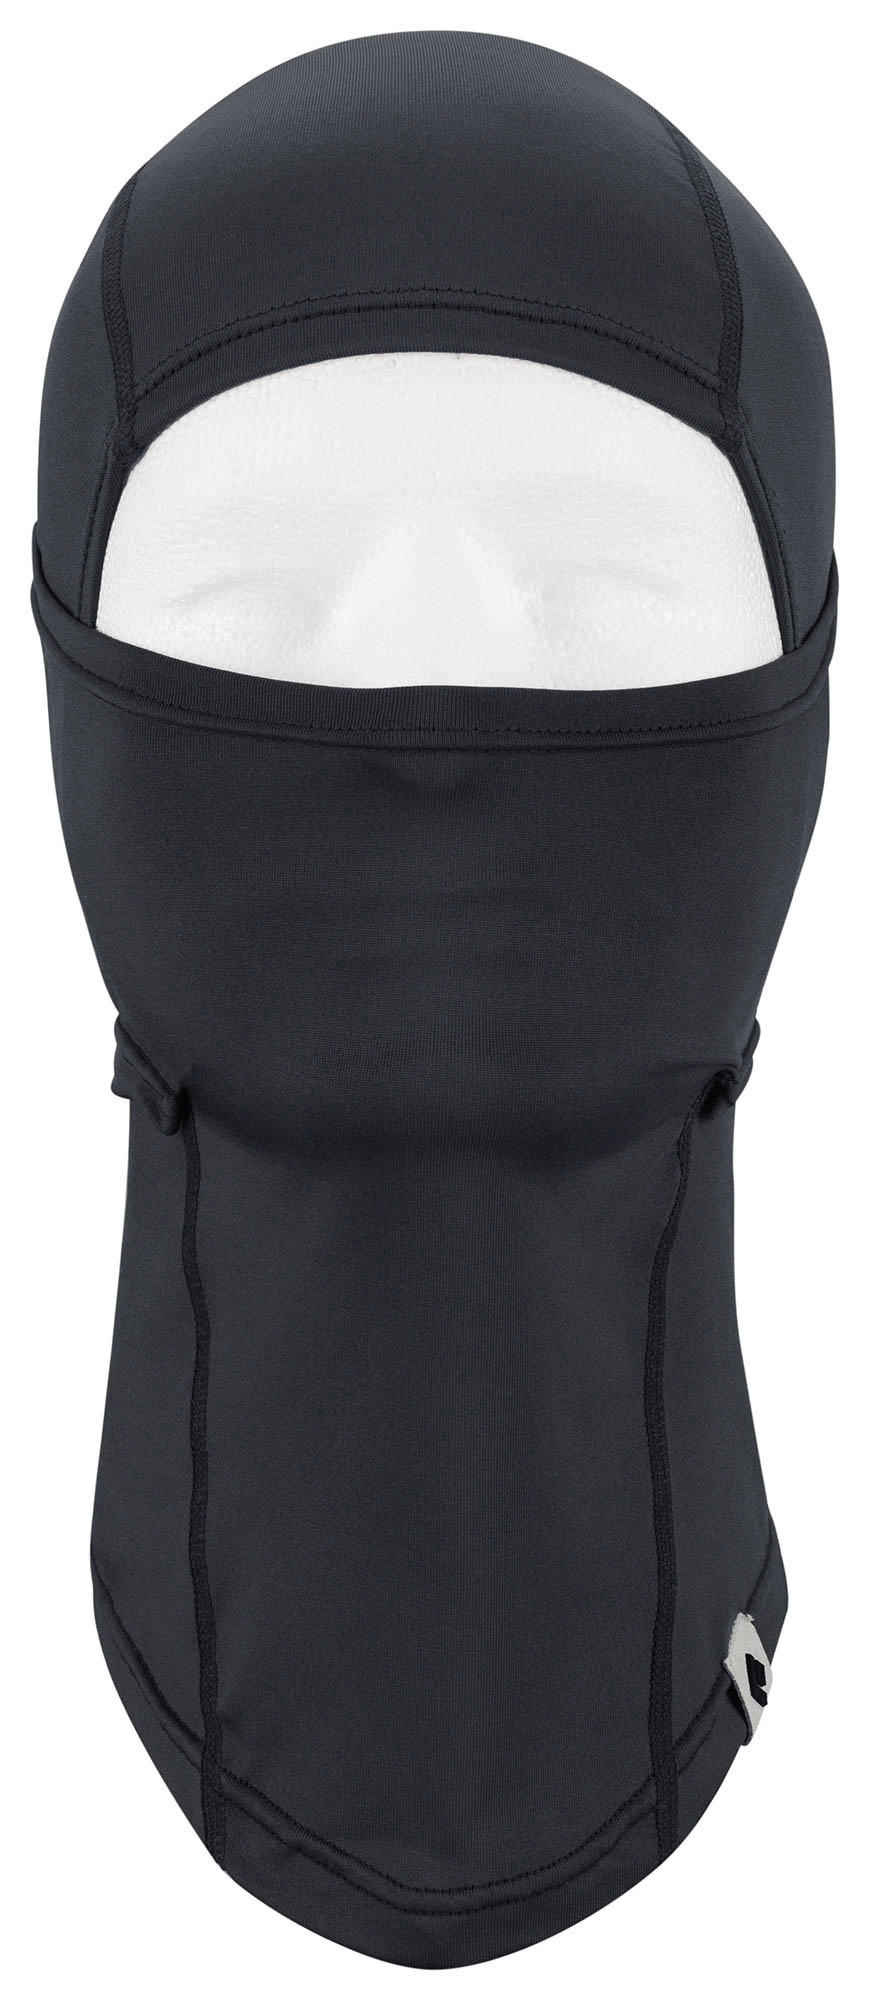 Black Diamond Dome Balaclava Black-30